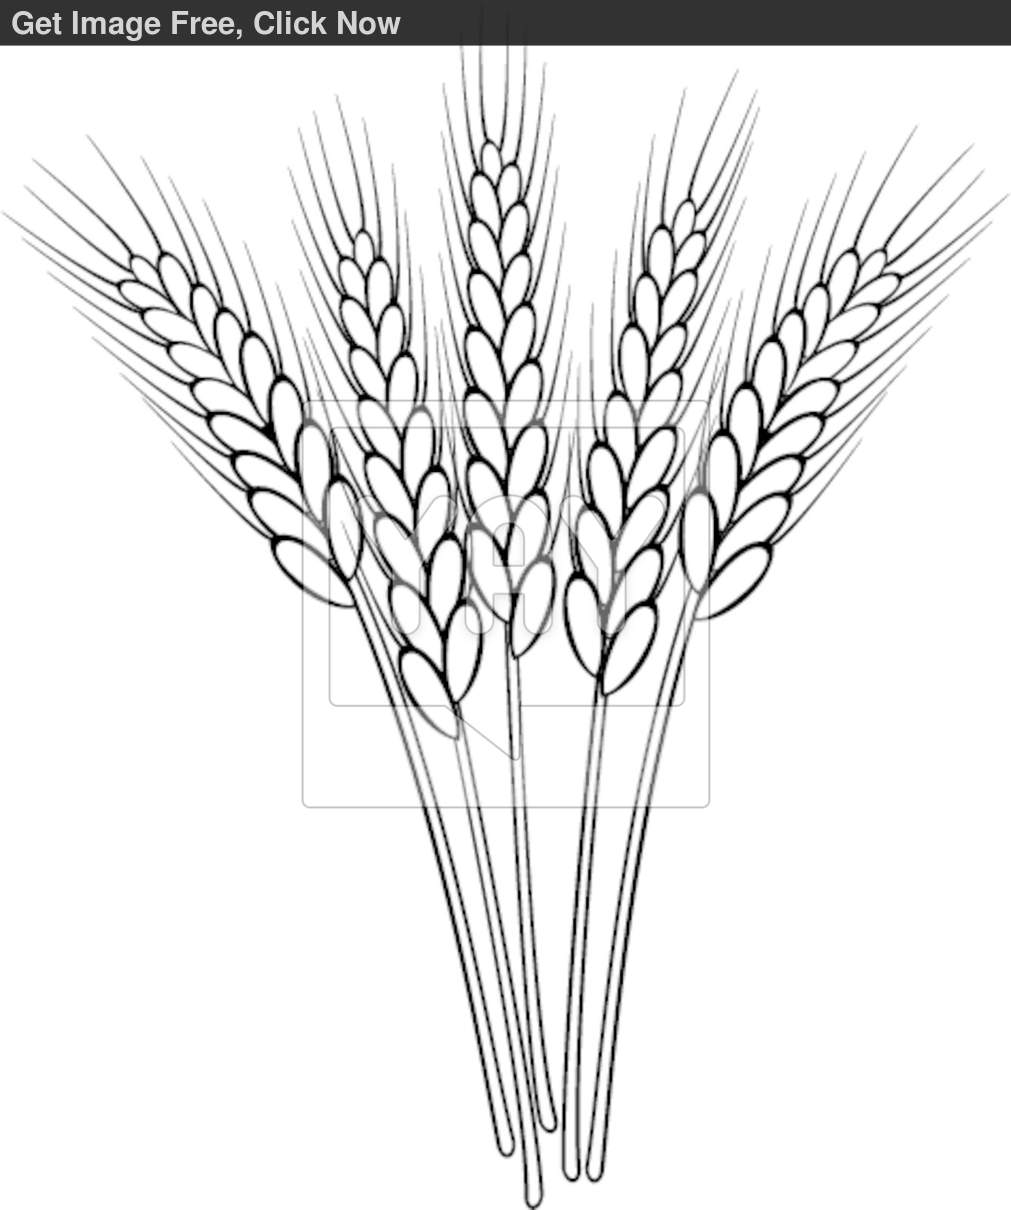 coloring pages on wheat - photo#13